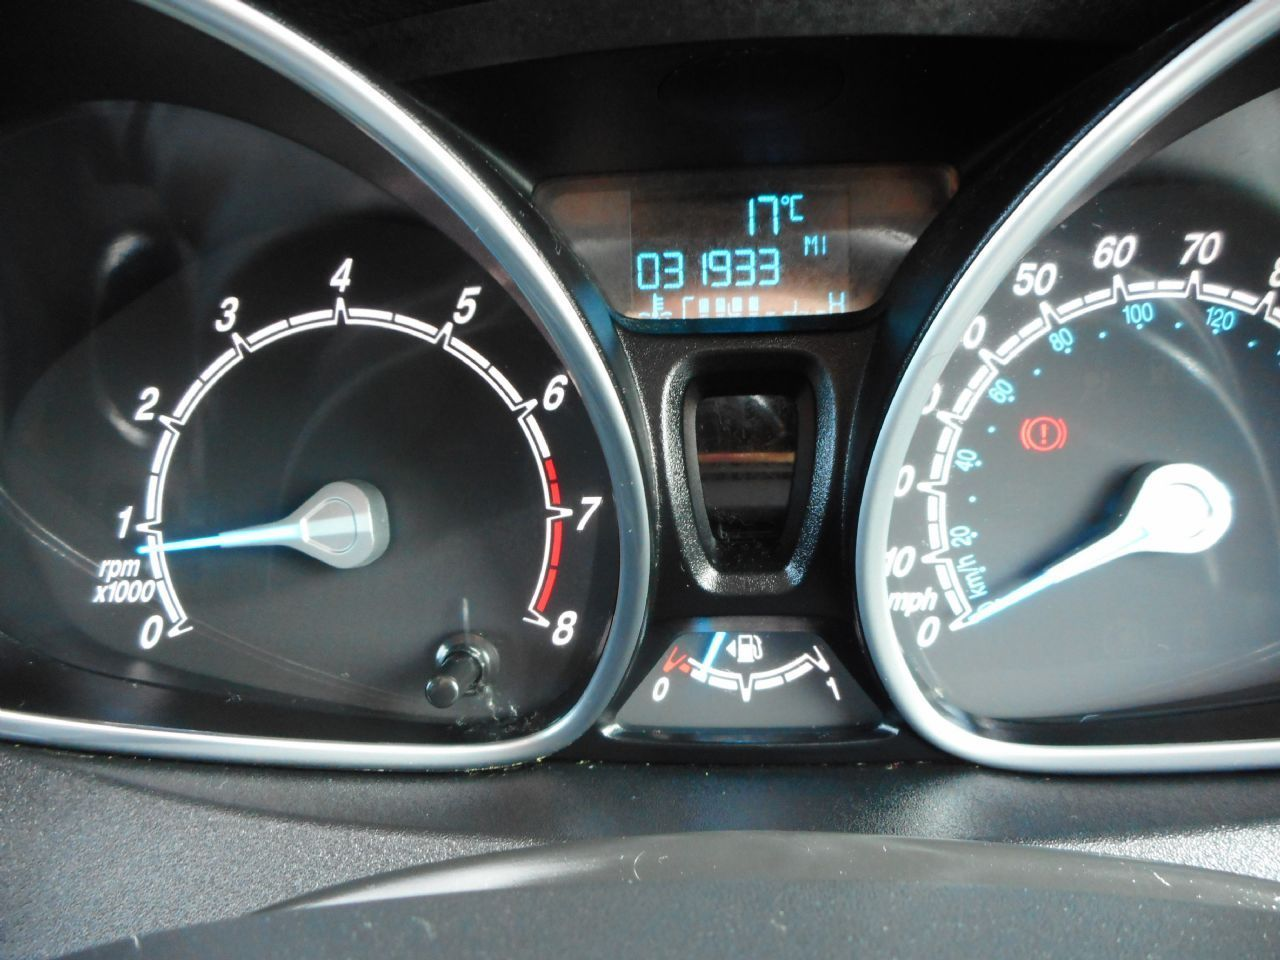 FORD B-MAX 1.4 90PS Zetec (2013) - Picture 12